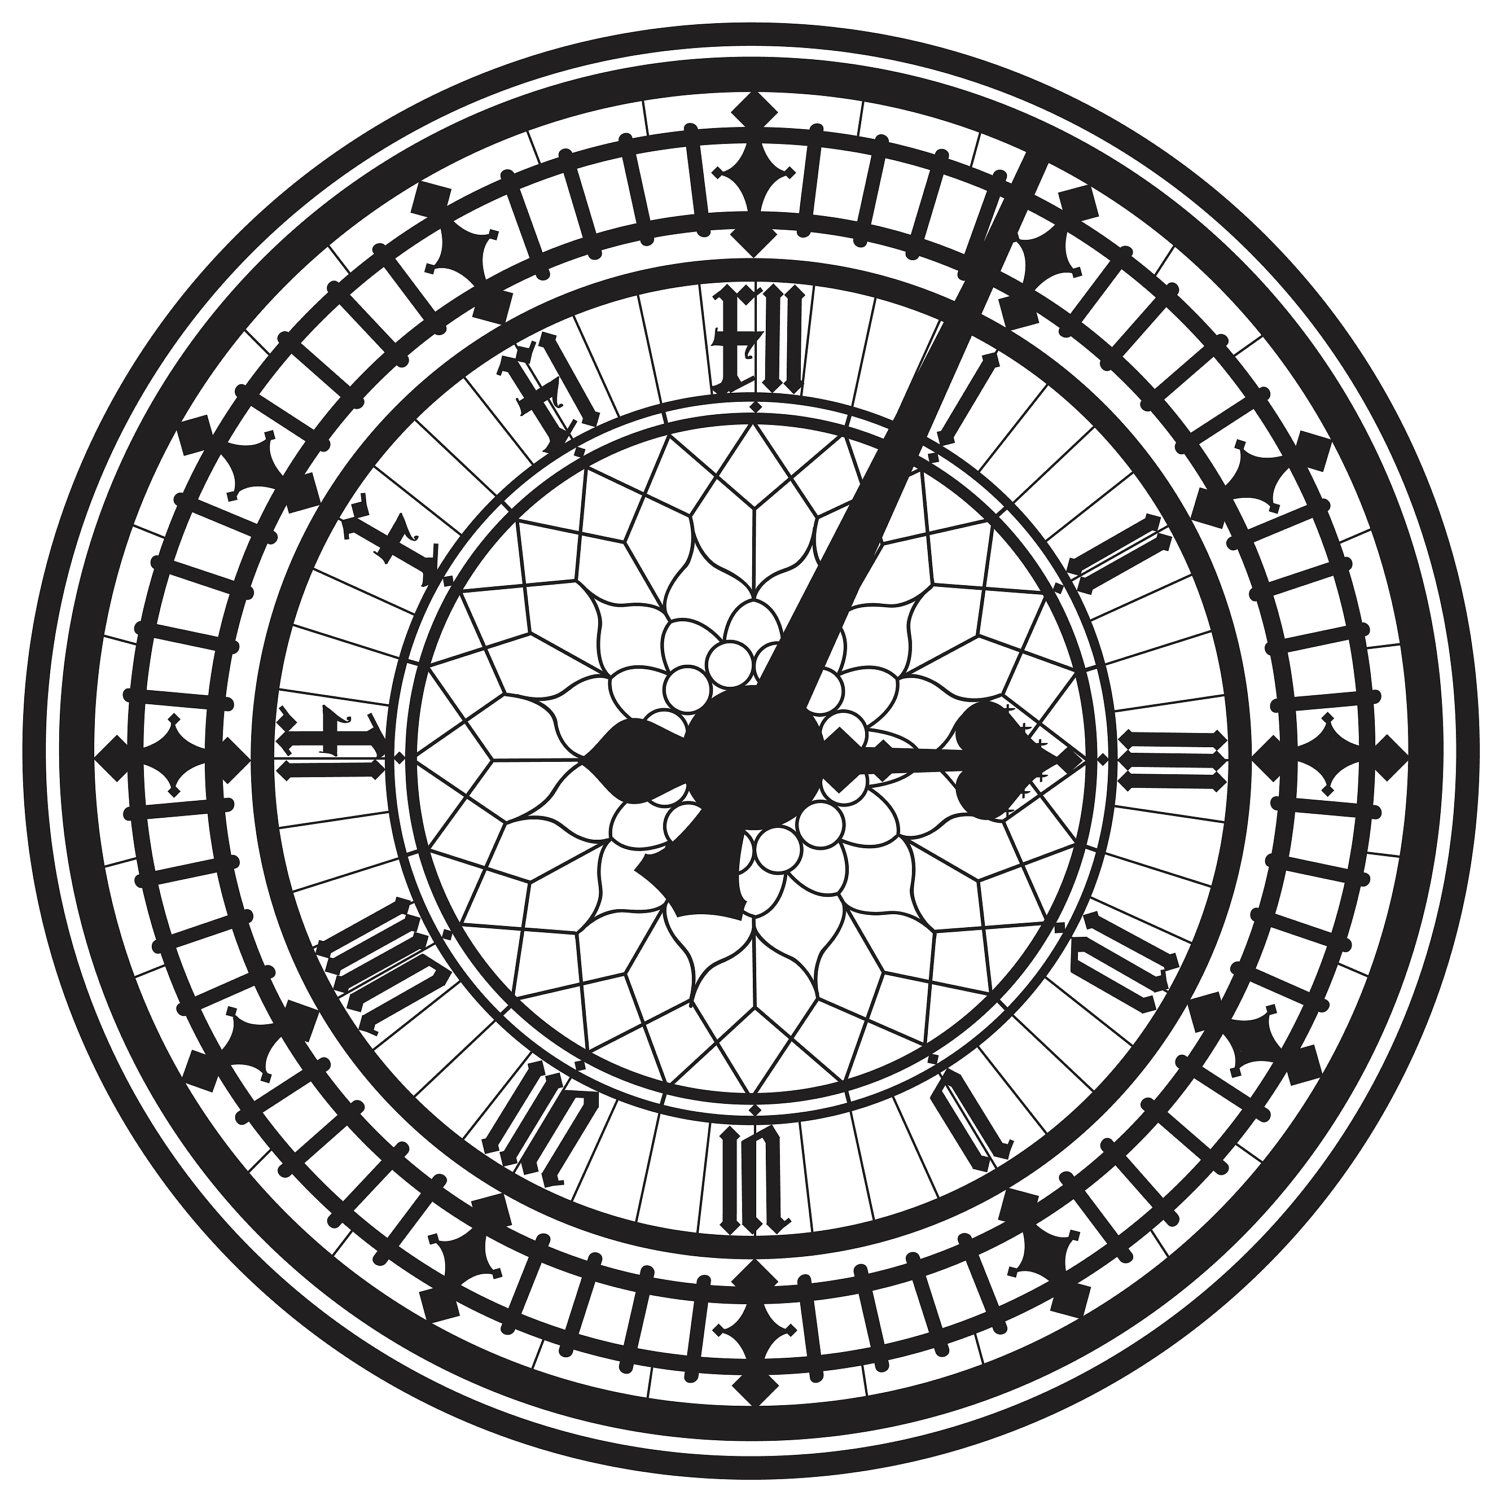 1500x1500 This Is The Big Ben Clock Face, In London. Silhouettes